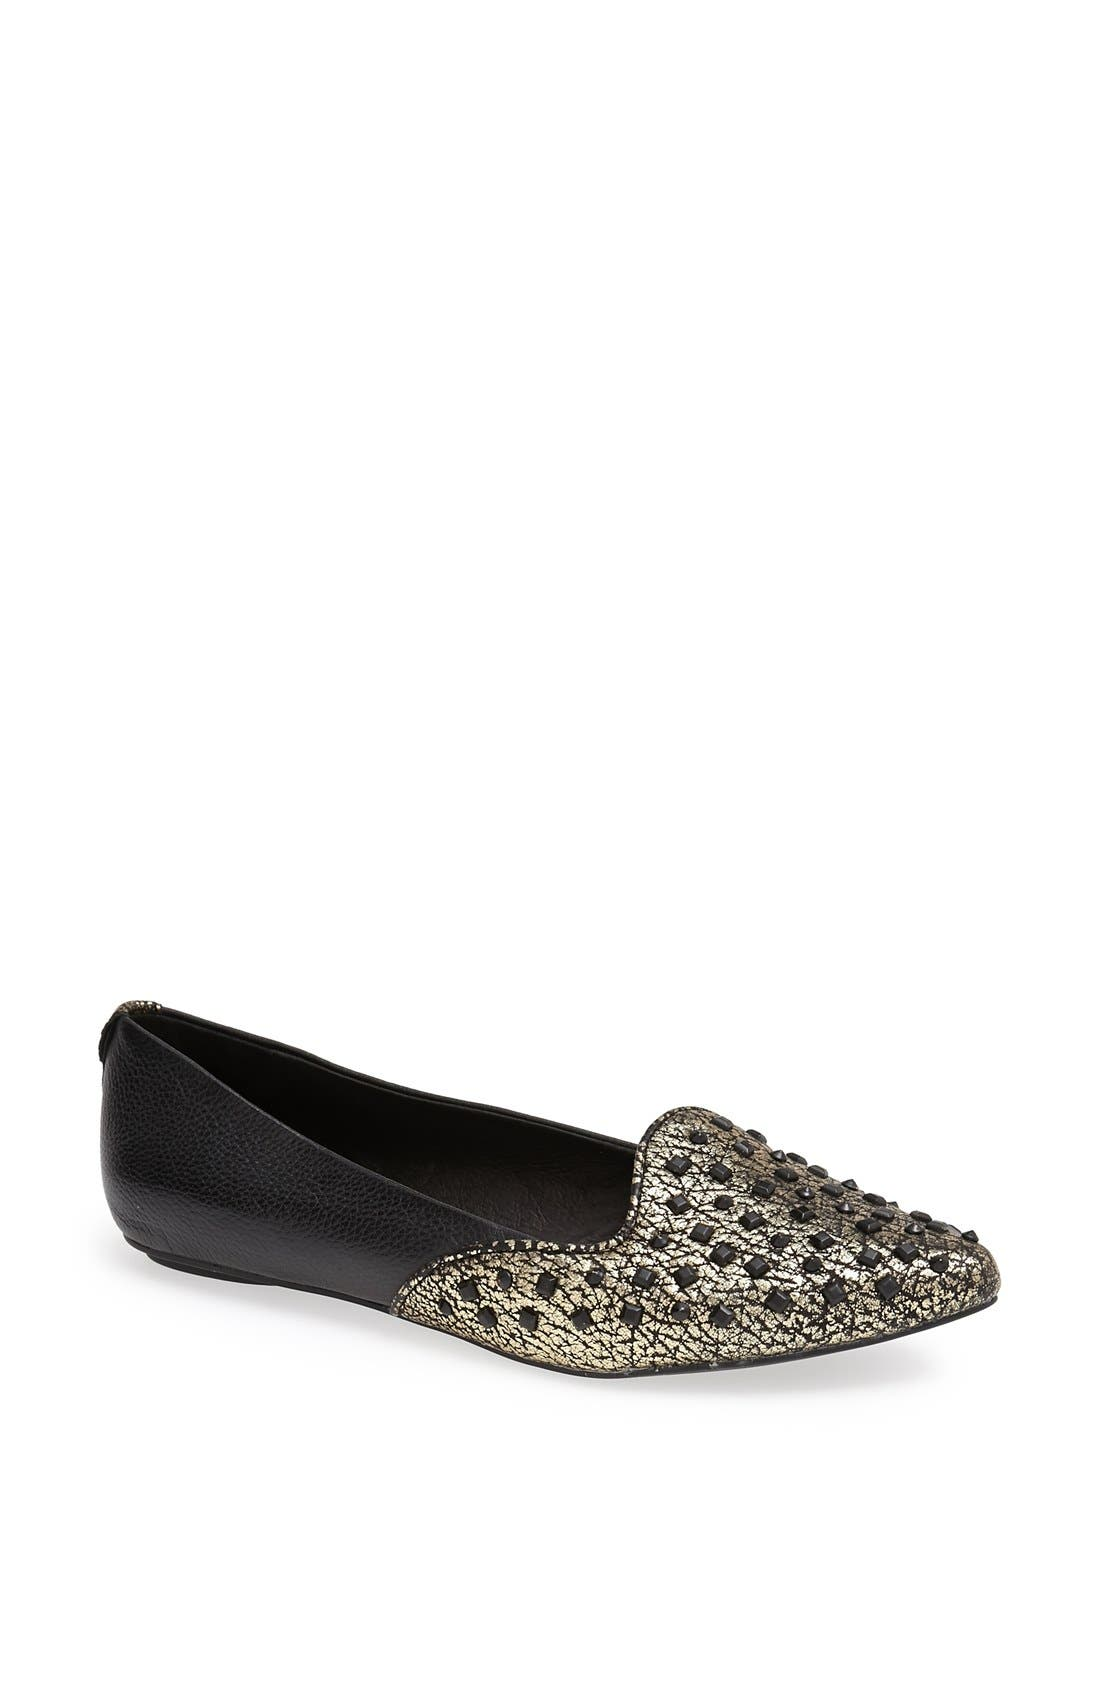 Alternate Image 1 Selected - Elliott Lucca 'Bonita' Flat (Online Only)